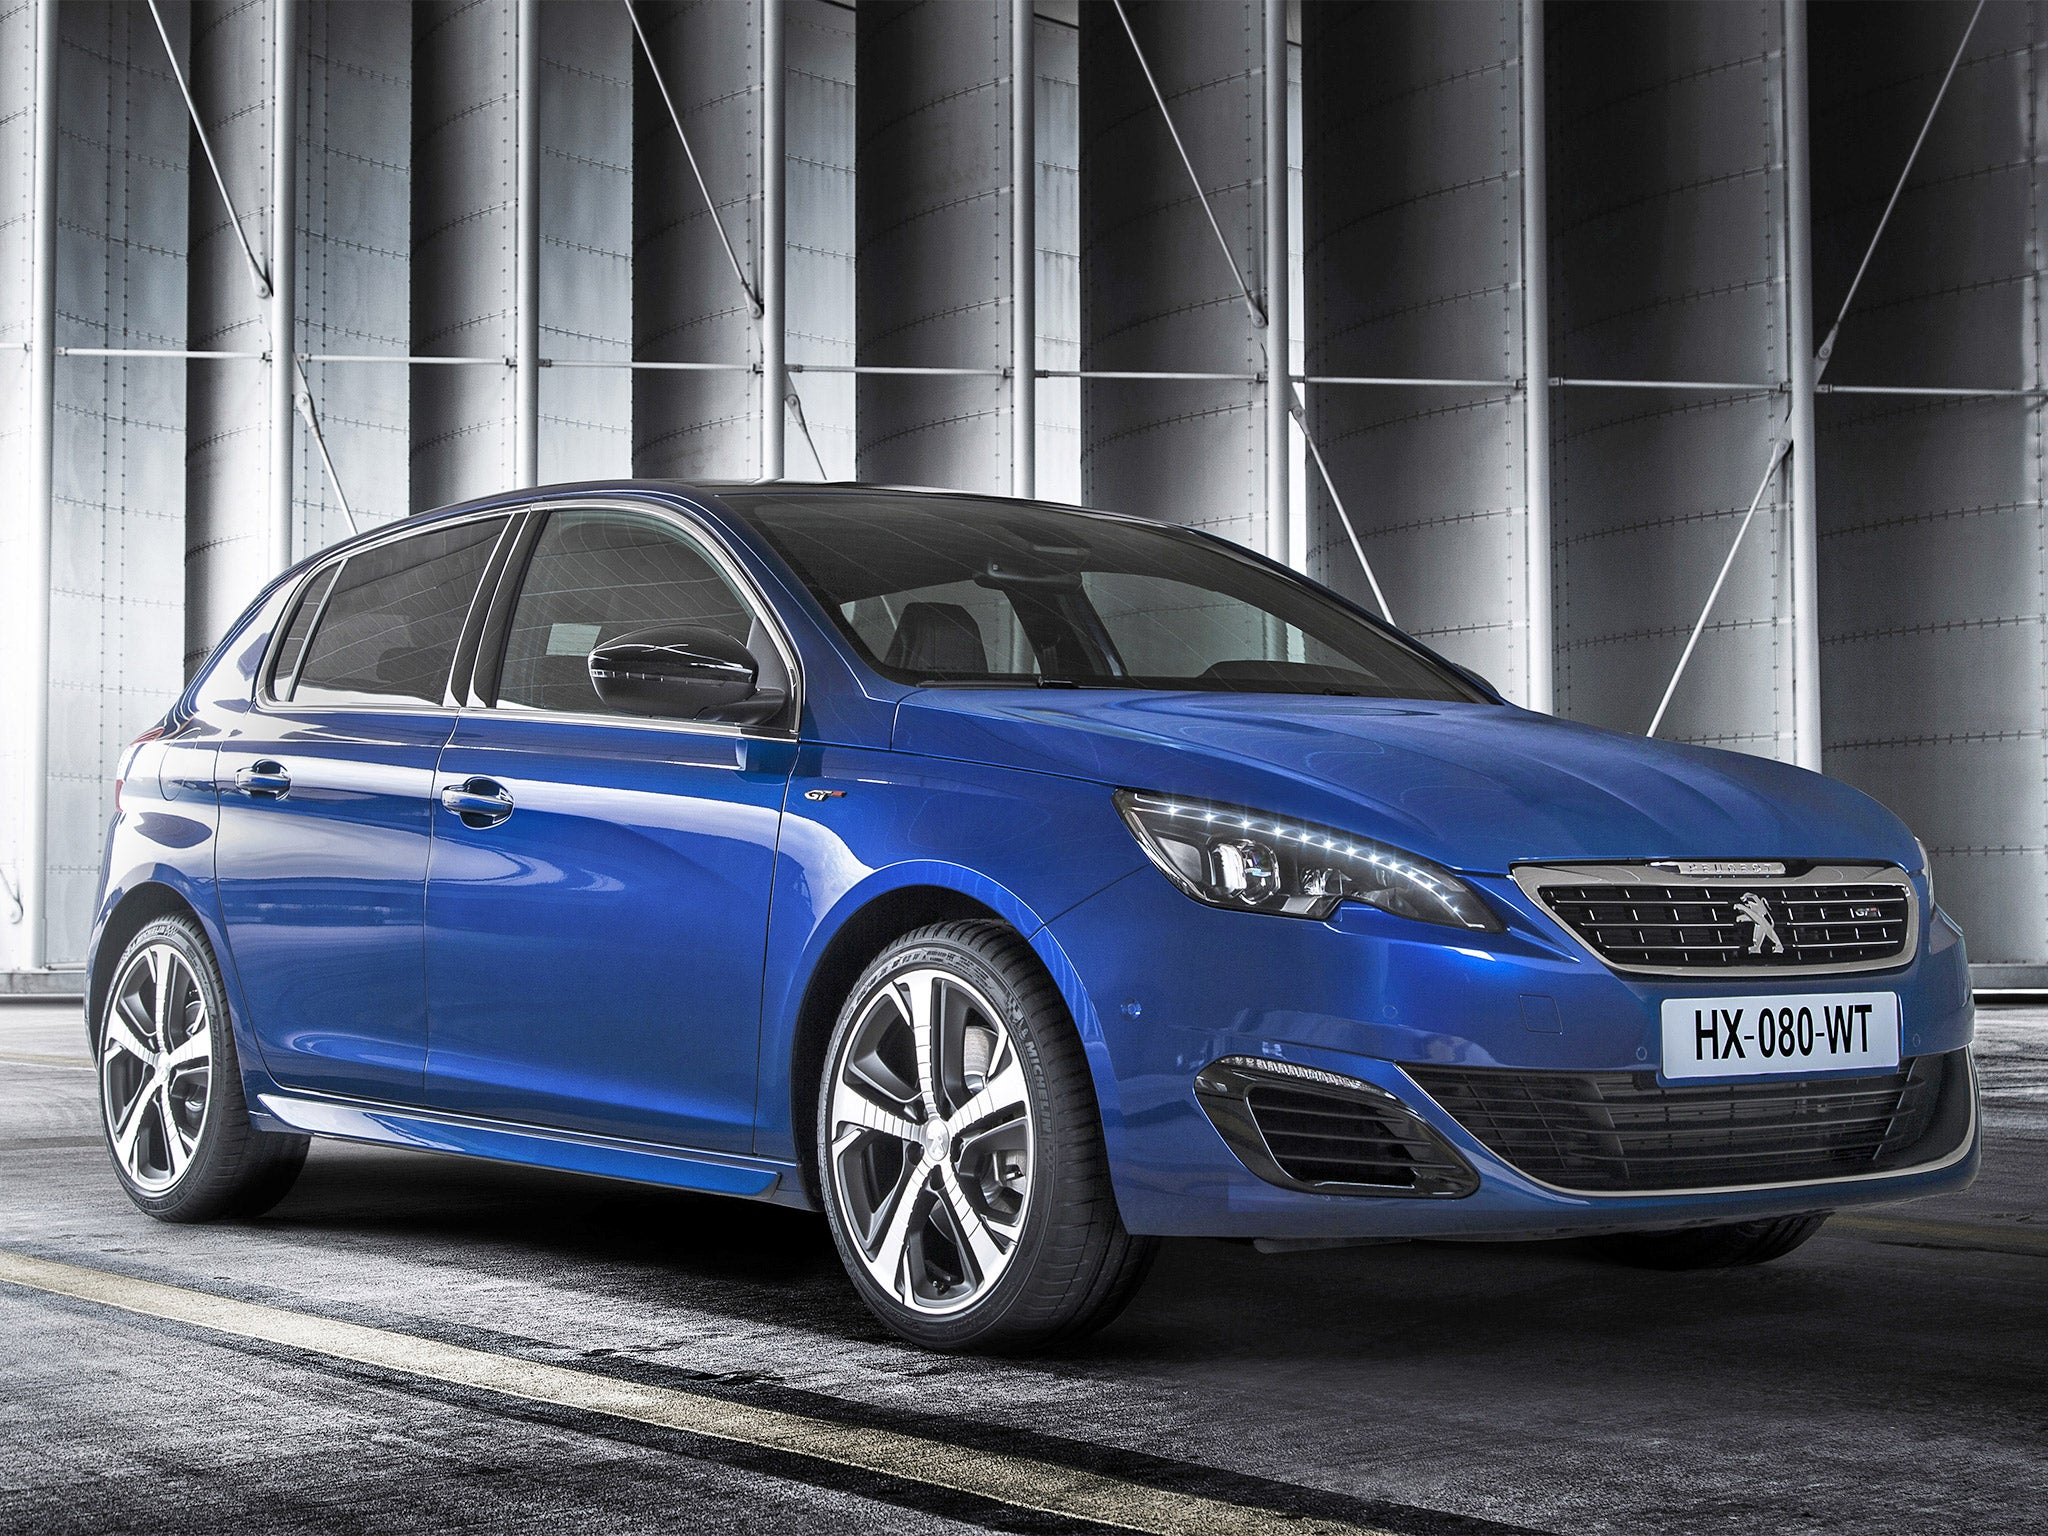 peugeot 308 gt hdi motoring review almost perfect but. Black Bedroom Furniture Sets. Home Design Ideas